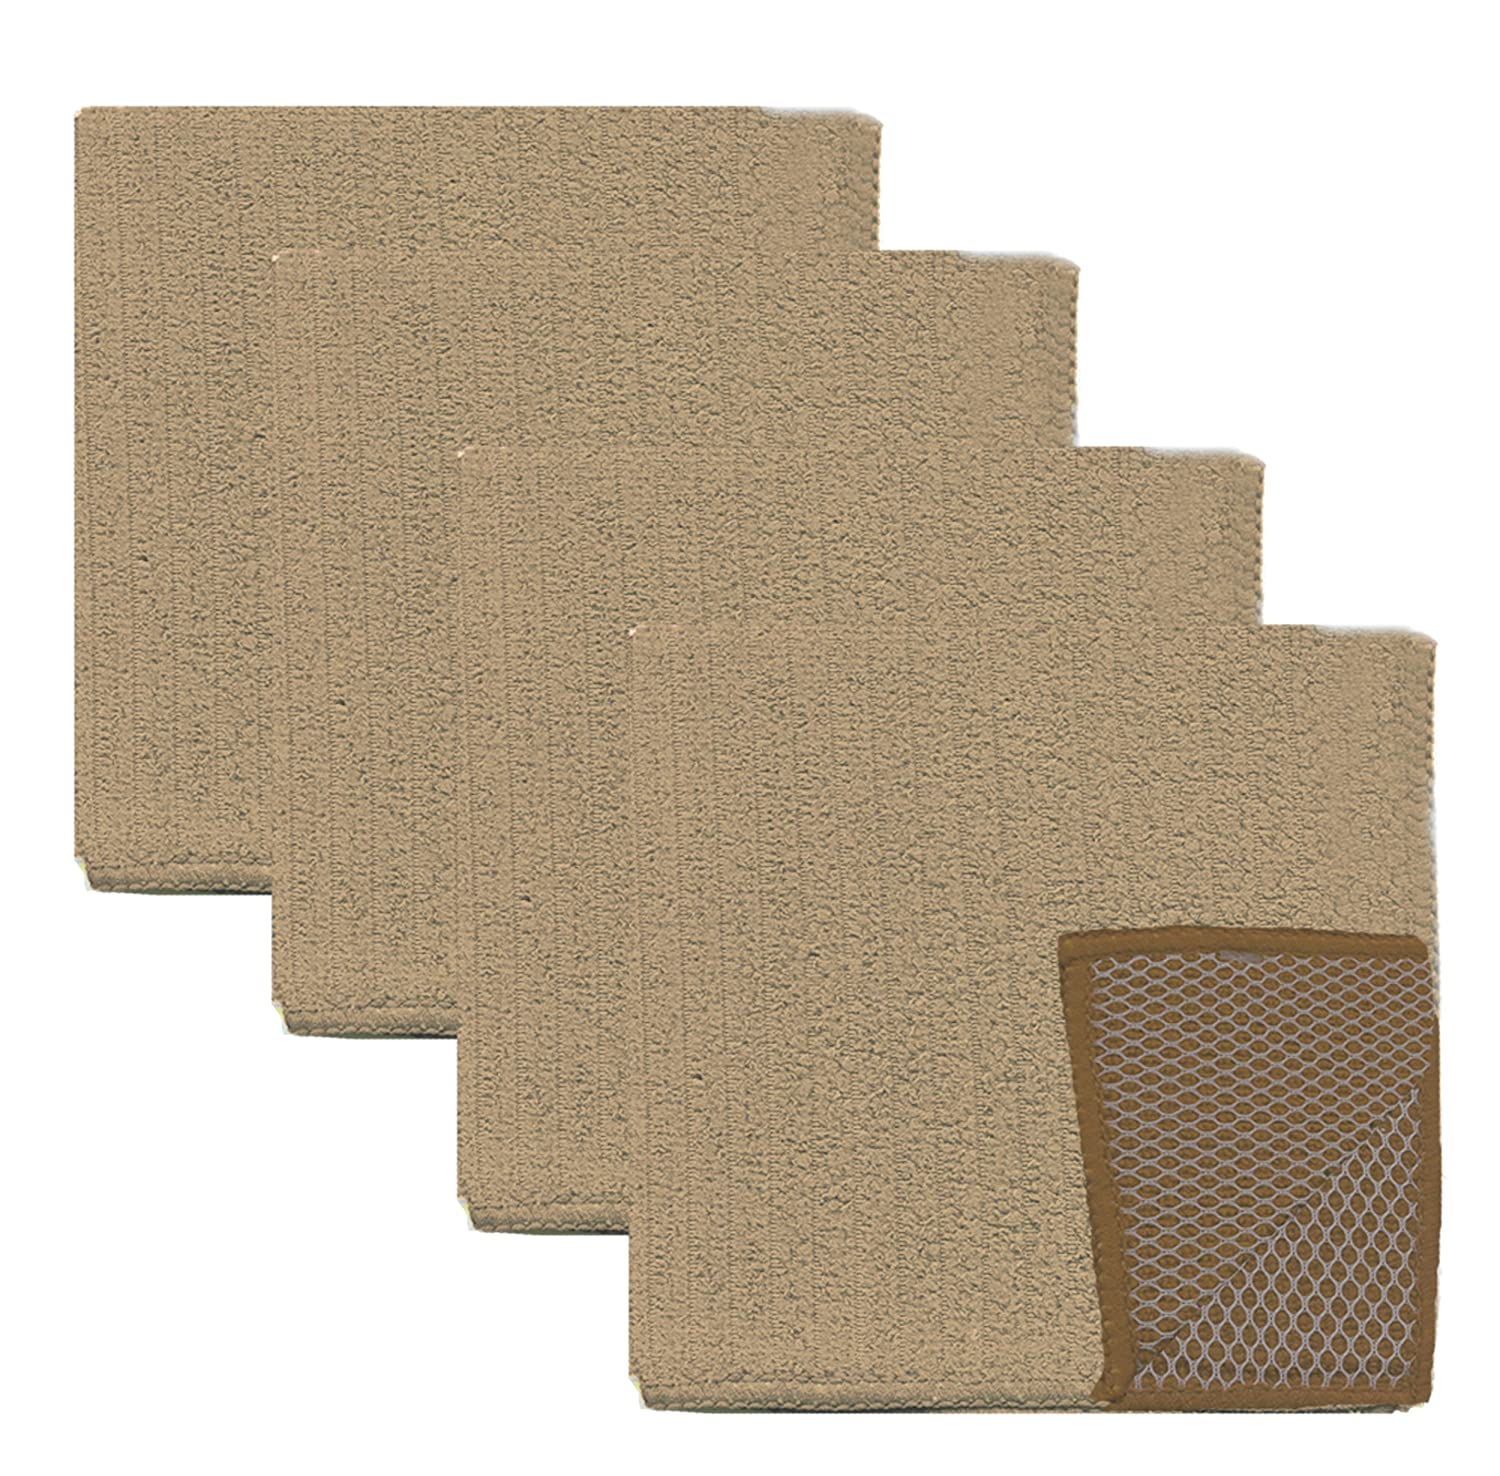 Gourmet Pro Solid 4 Pack Scrubber Dish Cloth 4, 12 x 12, Camel, 4 Piece Domay Inc. 79920